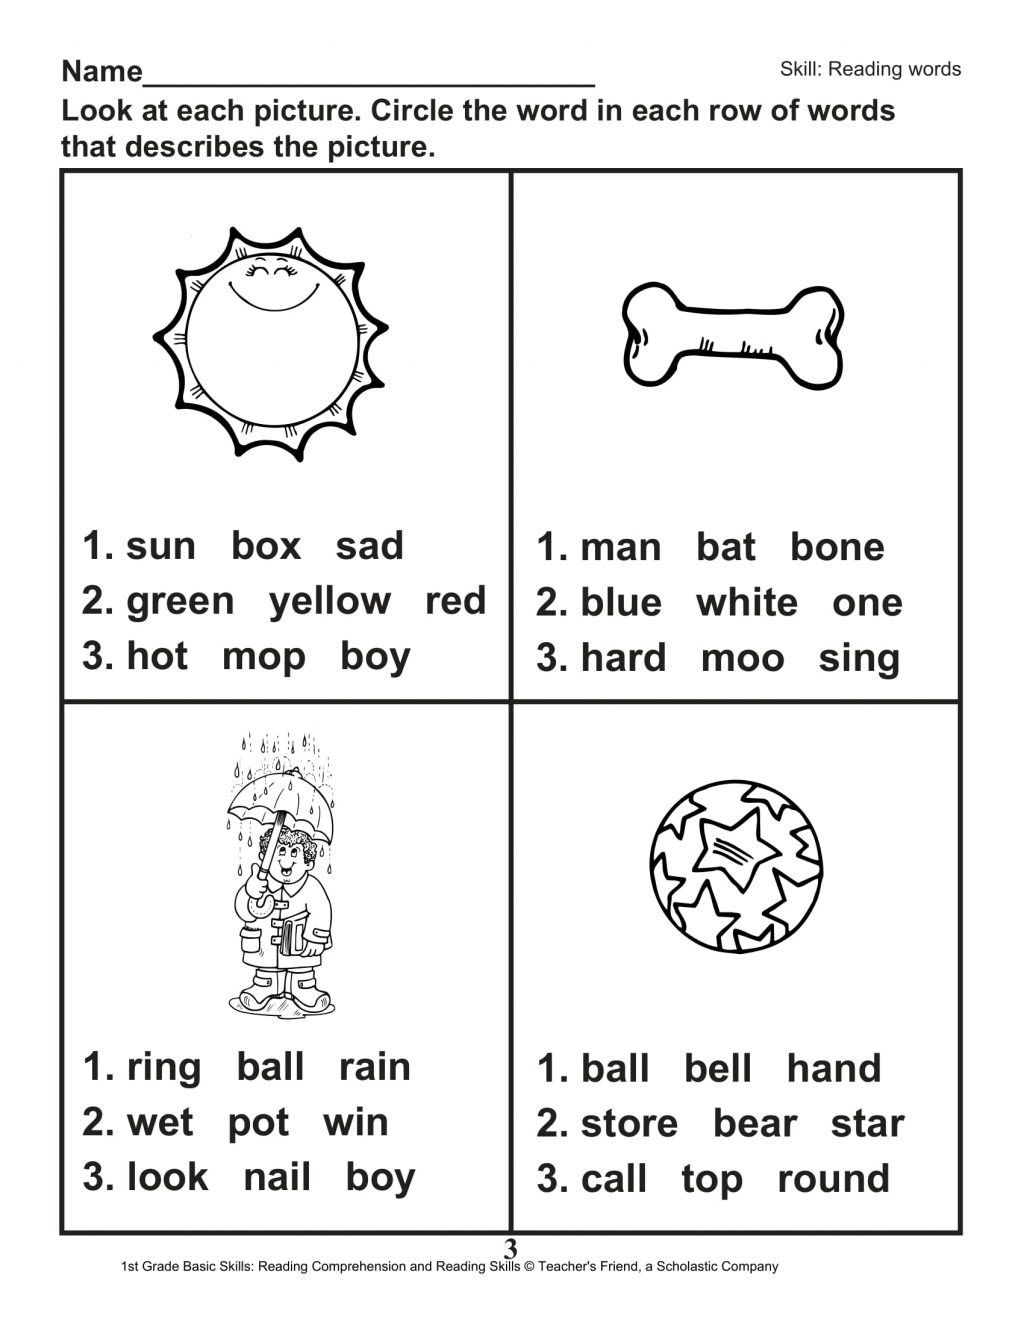 Digraph Worksheets for First Grade Worksheet Awesome 1st Grade Phonics Worksheets Image Ideas